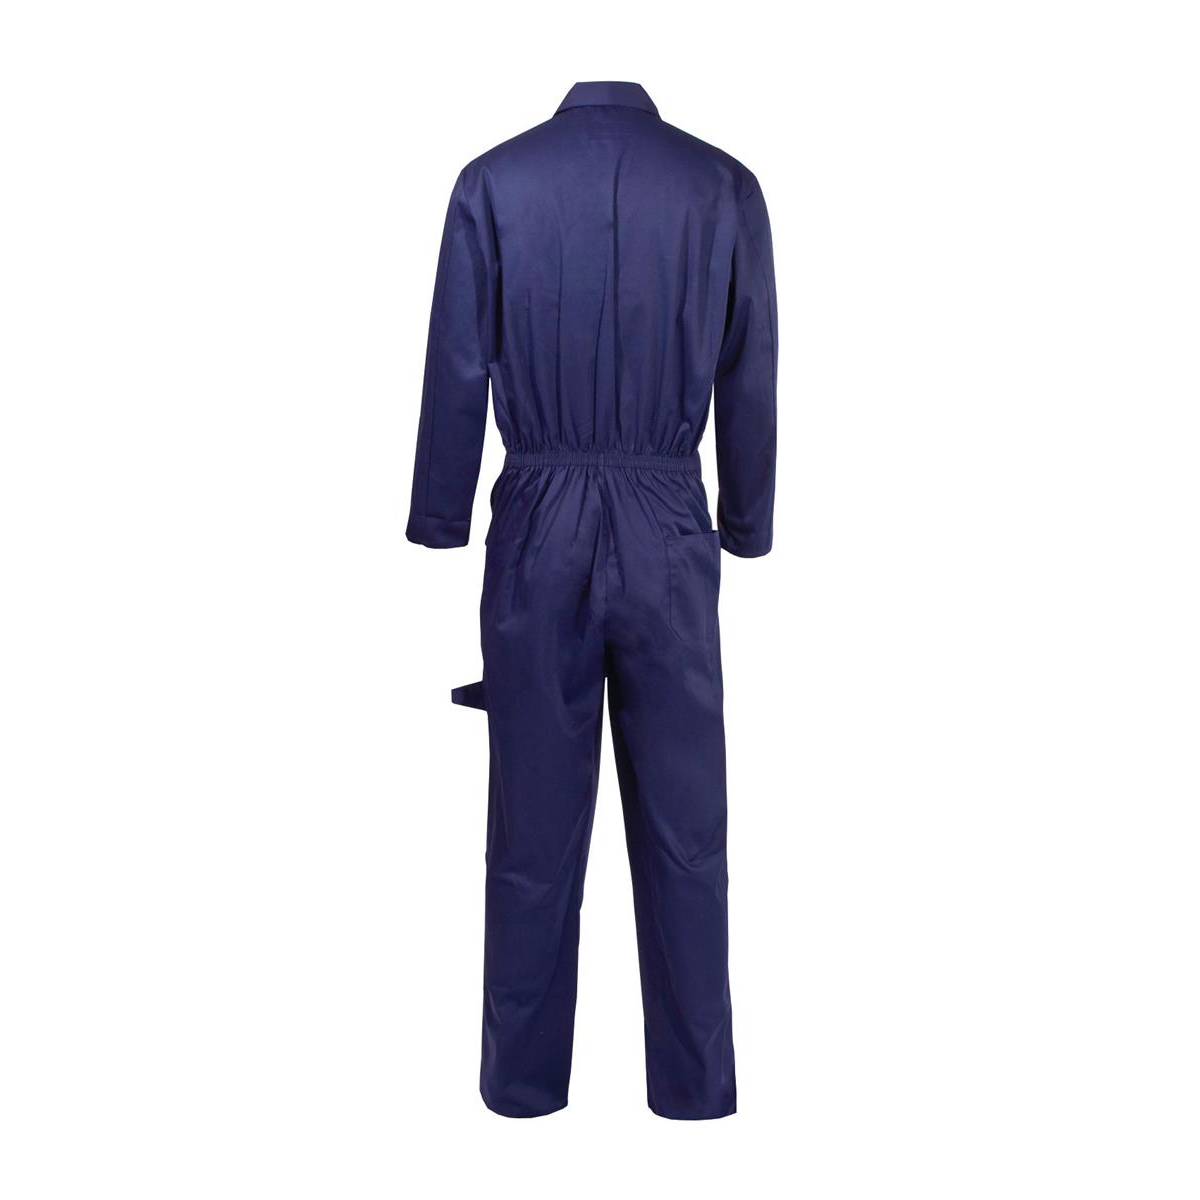 Coverall Basic with Popper Front Opening Polycotton Small Navy Ref RPCBSN38 *Approx 3 Day Leadtime*